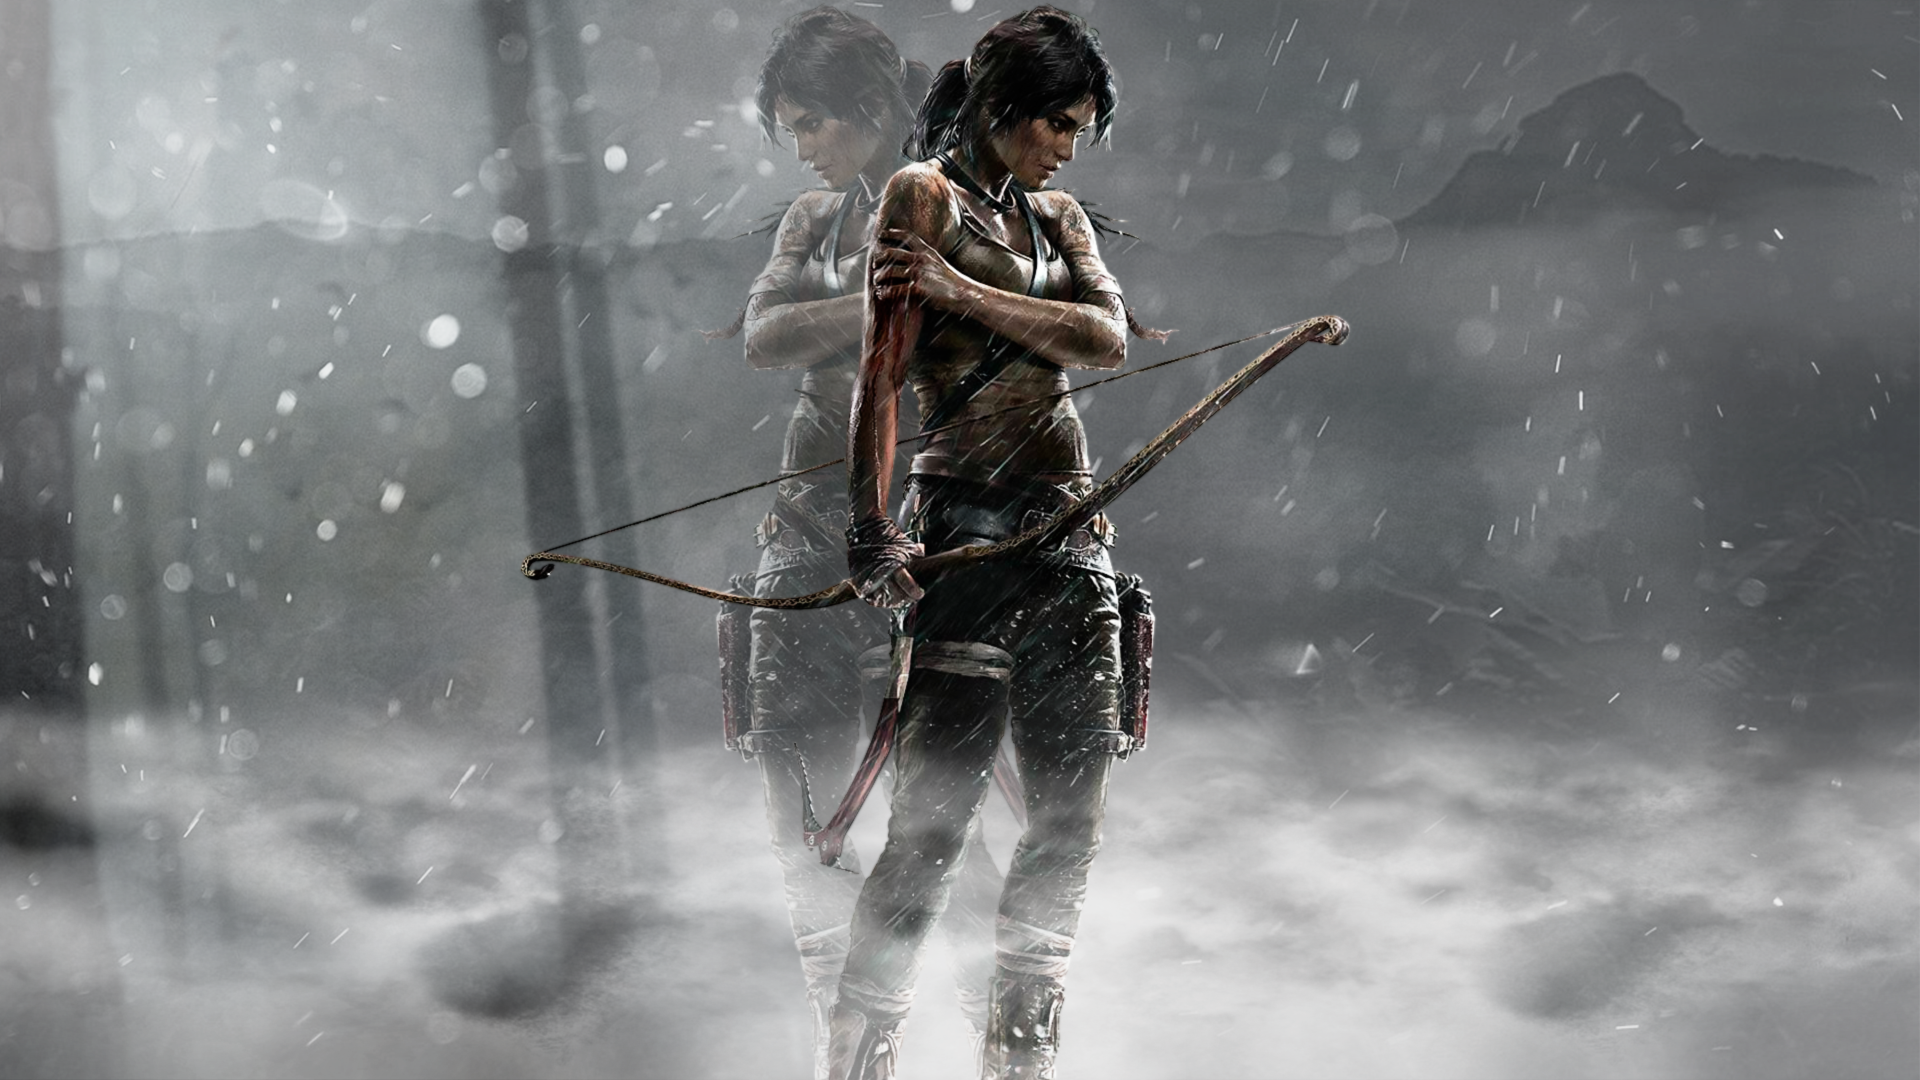 Rise Of The Tomb Raider Full HD Fond D'écran And Arrière